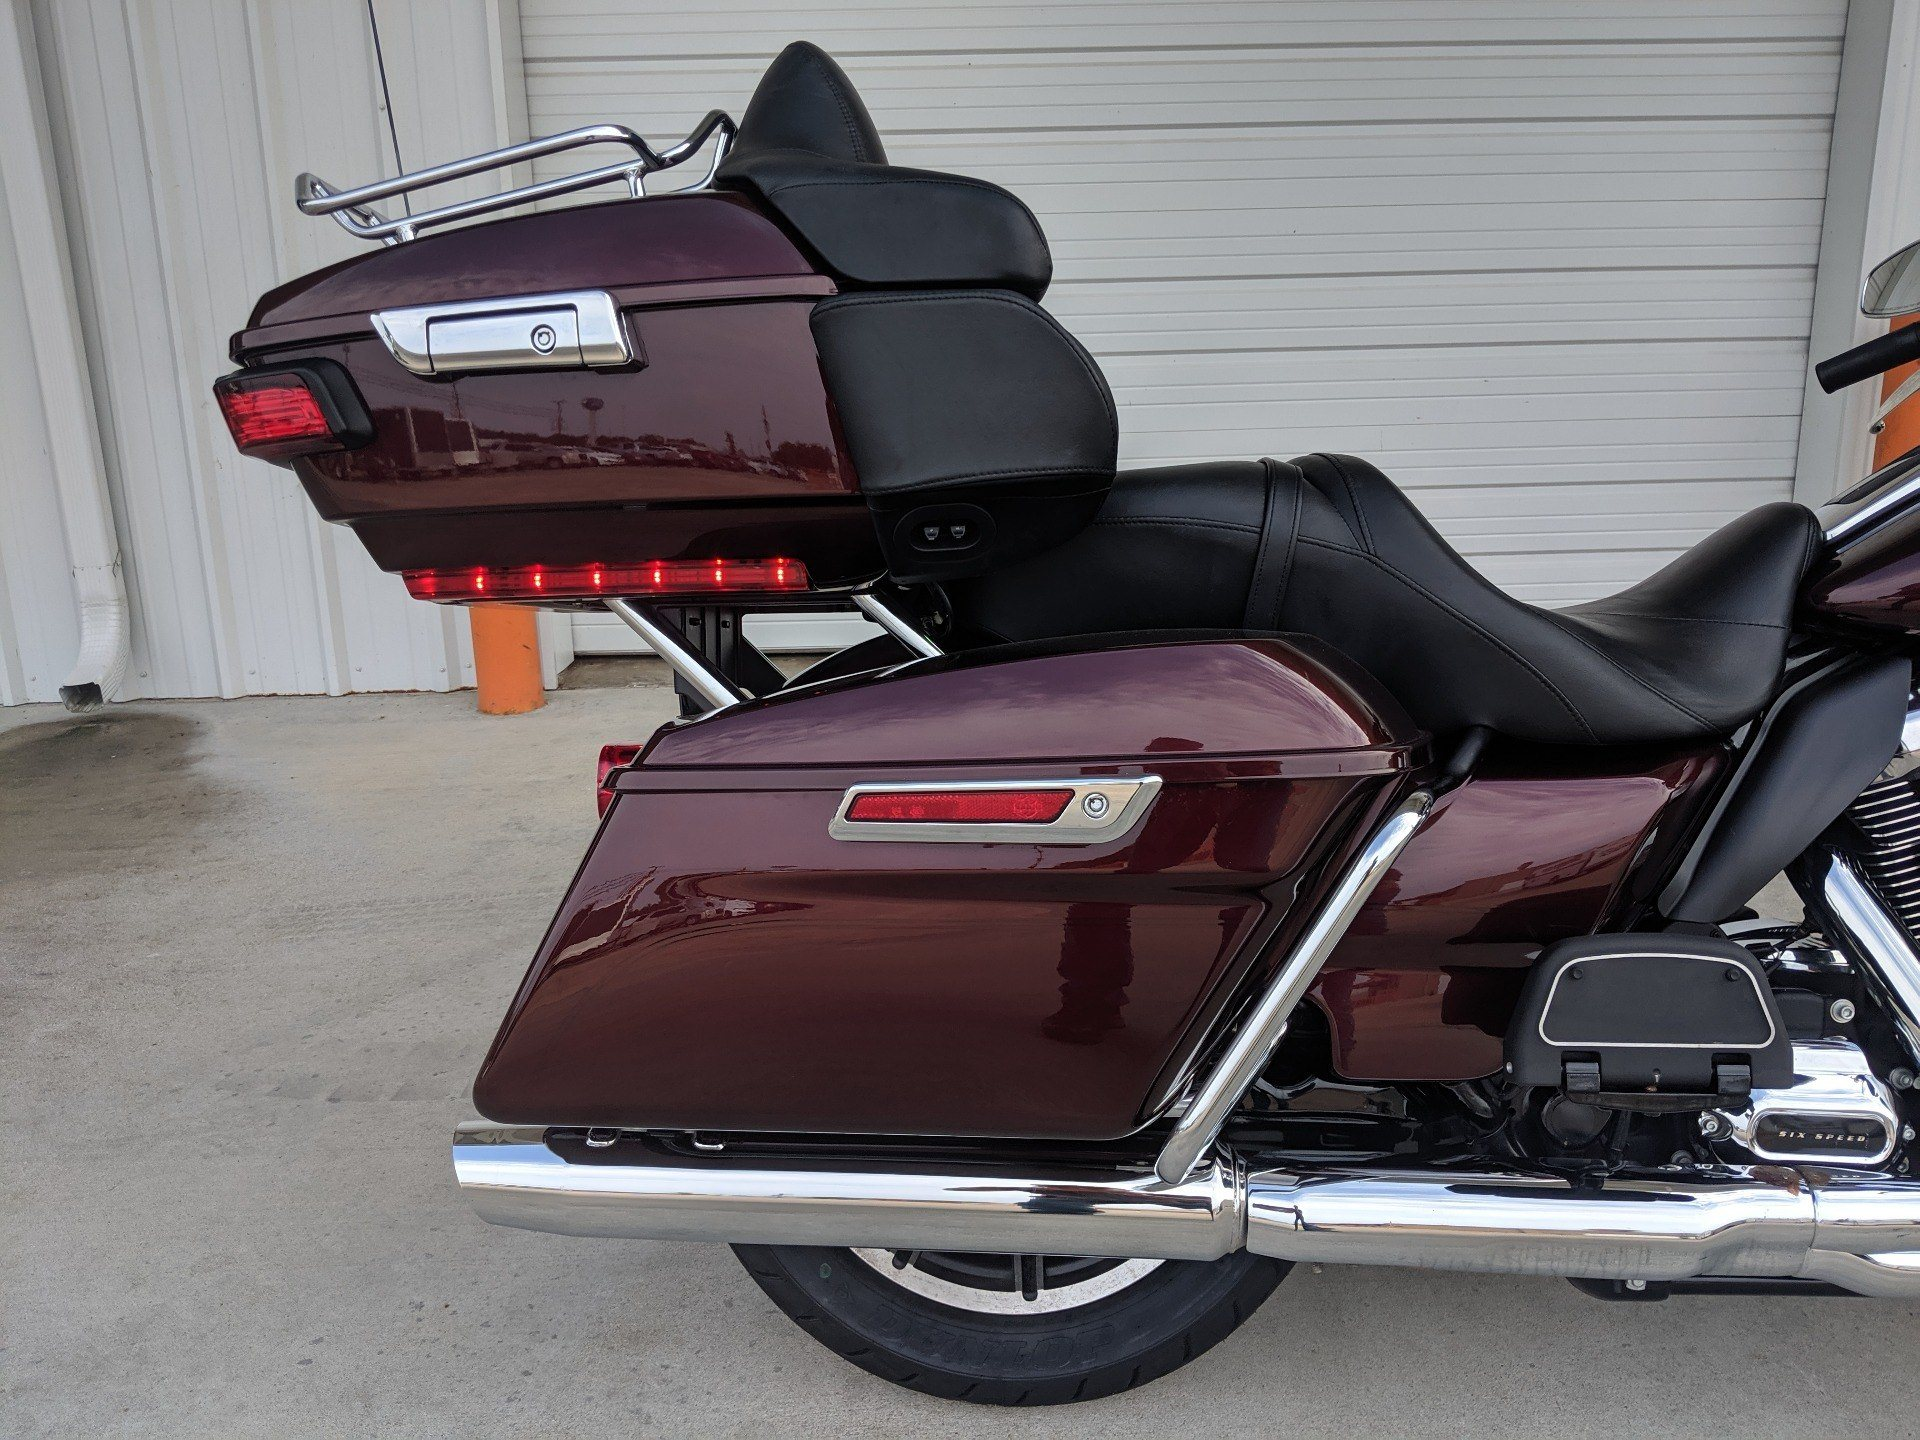 2019 Harley-Davidson Electra Glide® Ultra Classic® in Monroe, Louisiana - Photo 8